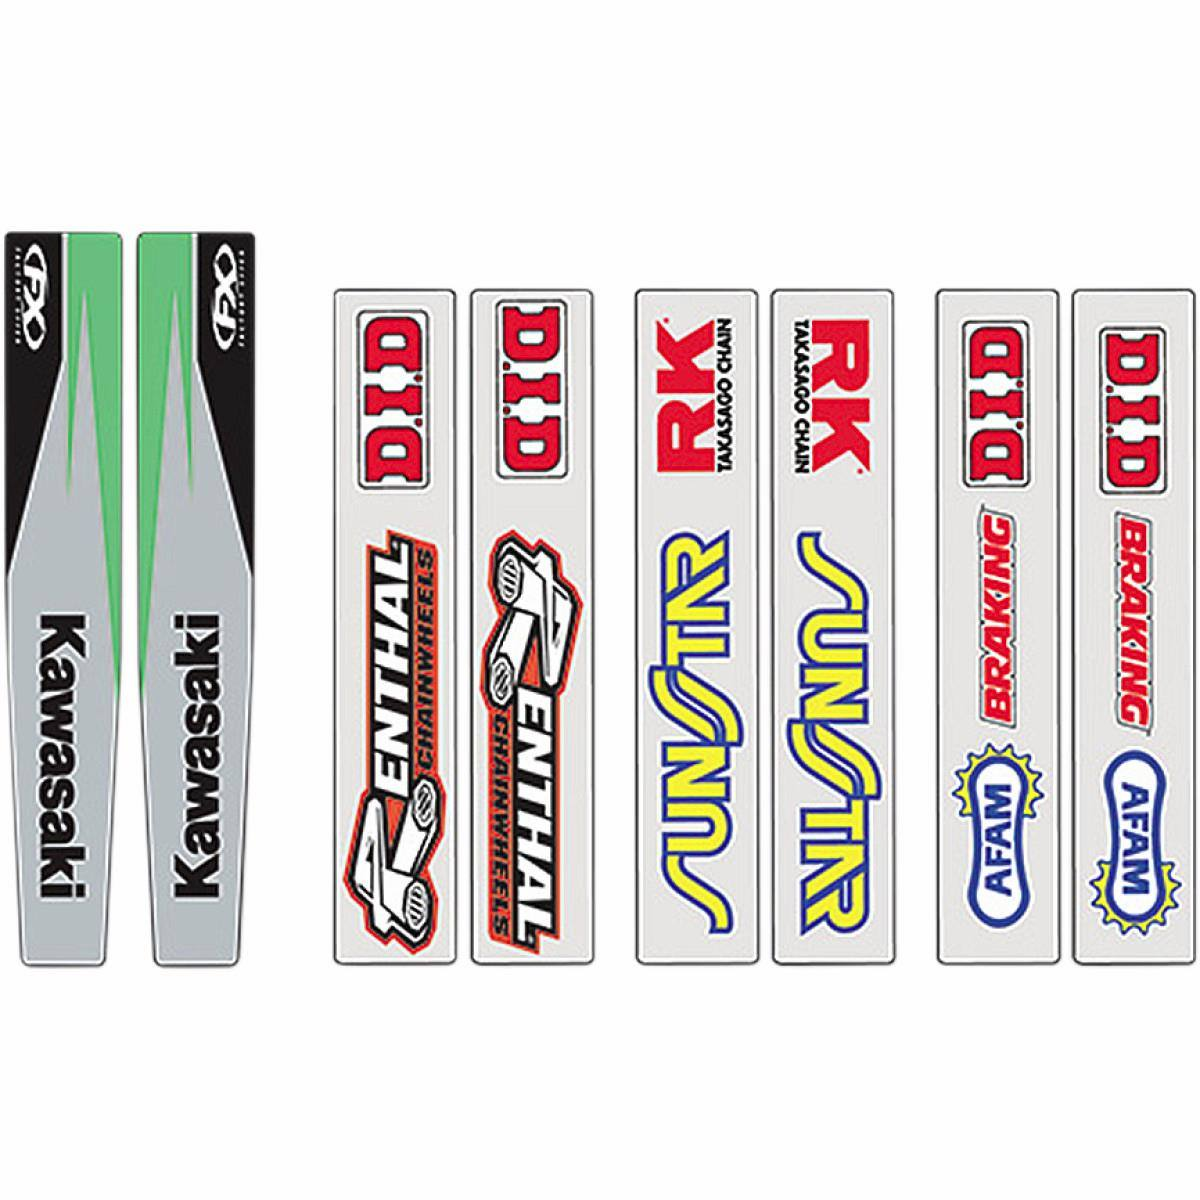 17-42320 OEM Swing Arm Graphic Factory Effex